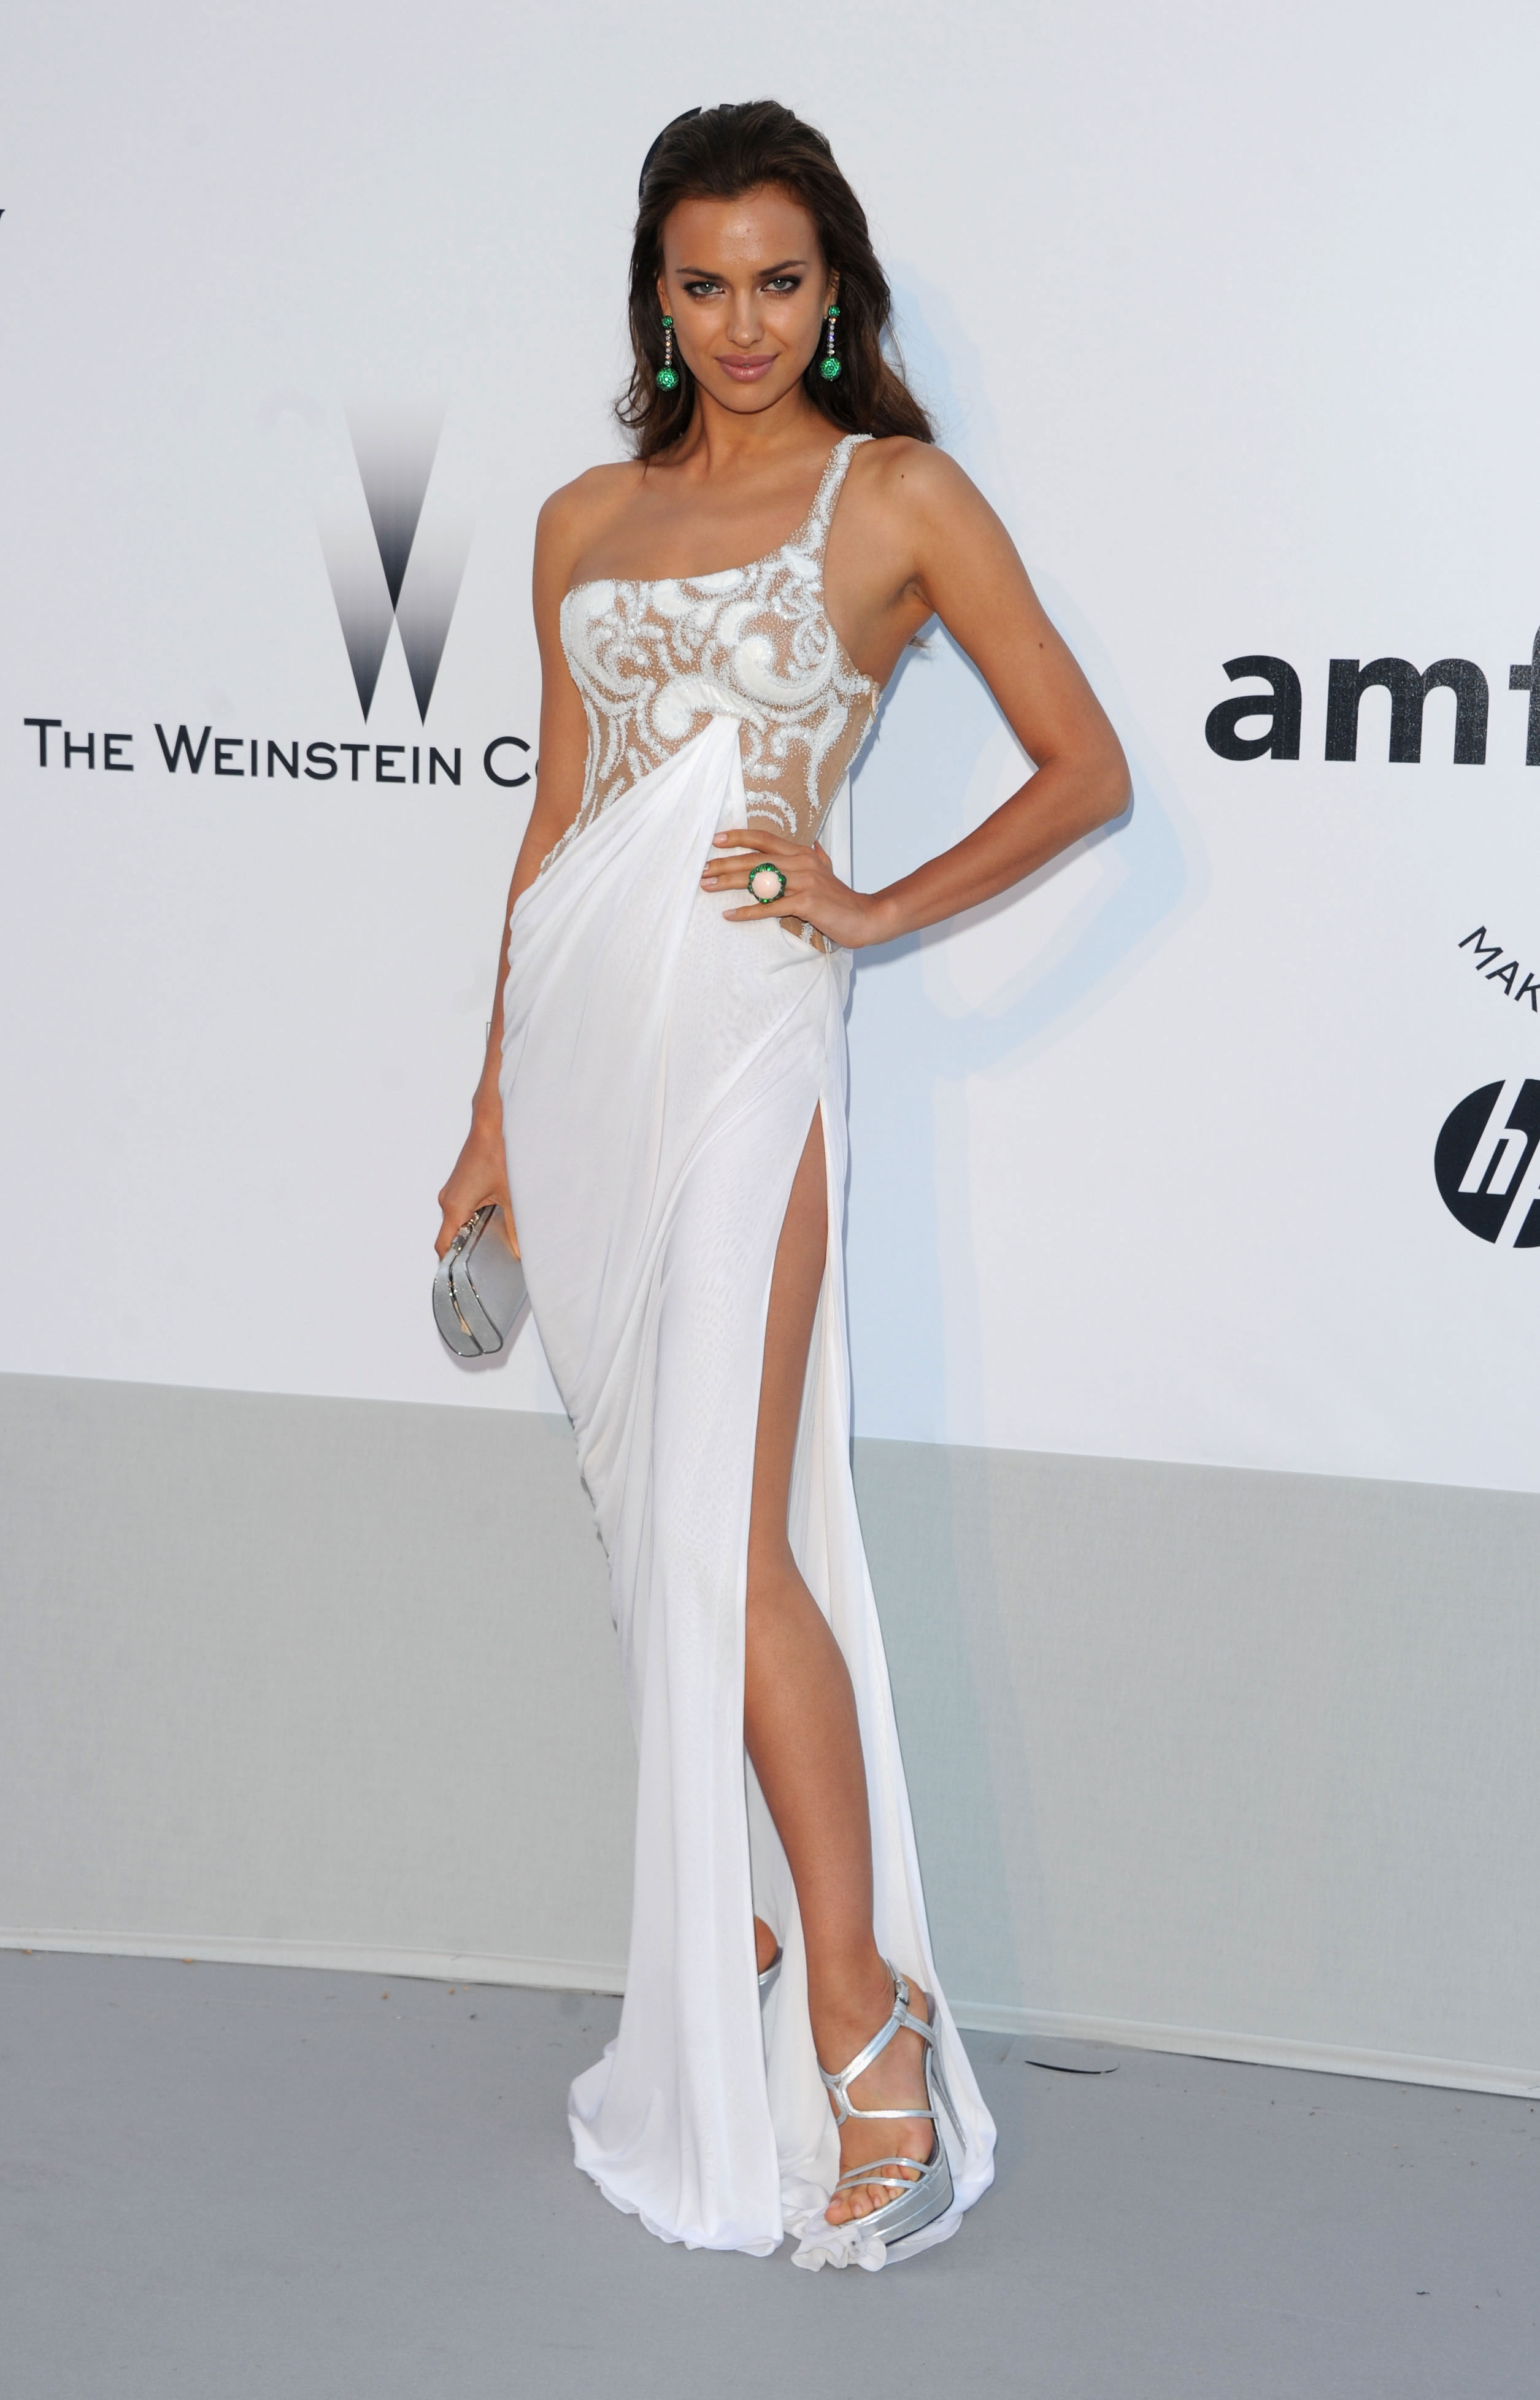 Irina Shayk attends amfAR's Cinema Against AIDS Gala during the 64th Annual Cannes Film Festival.